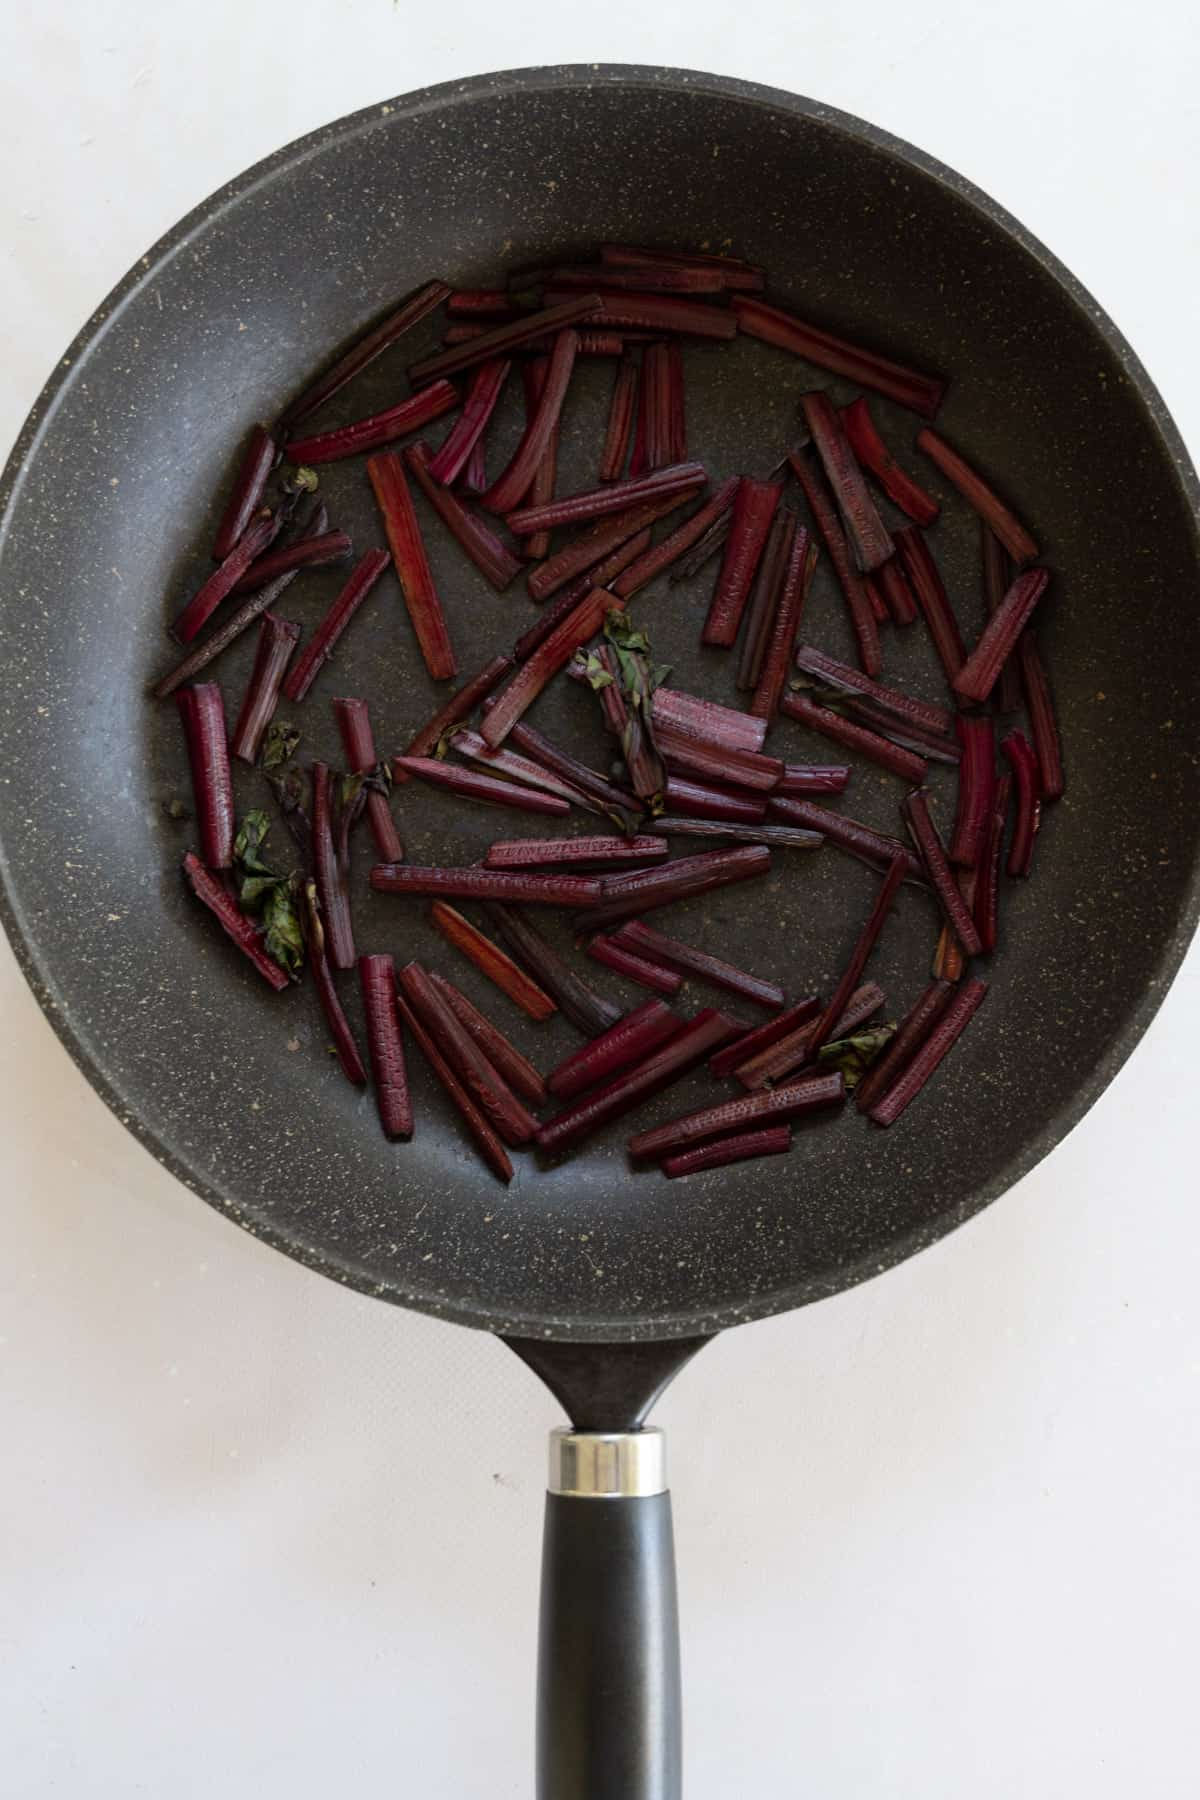 sauteed beetroot stems without oil in a black pan